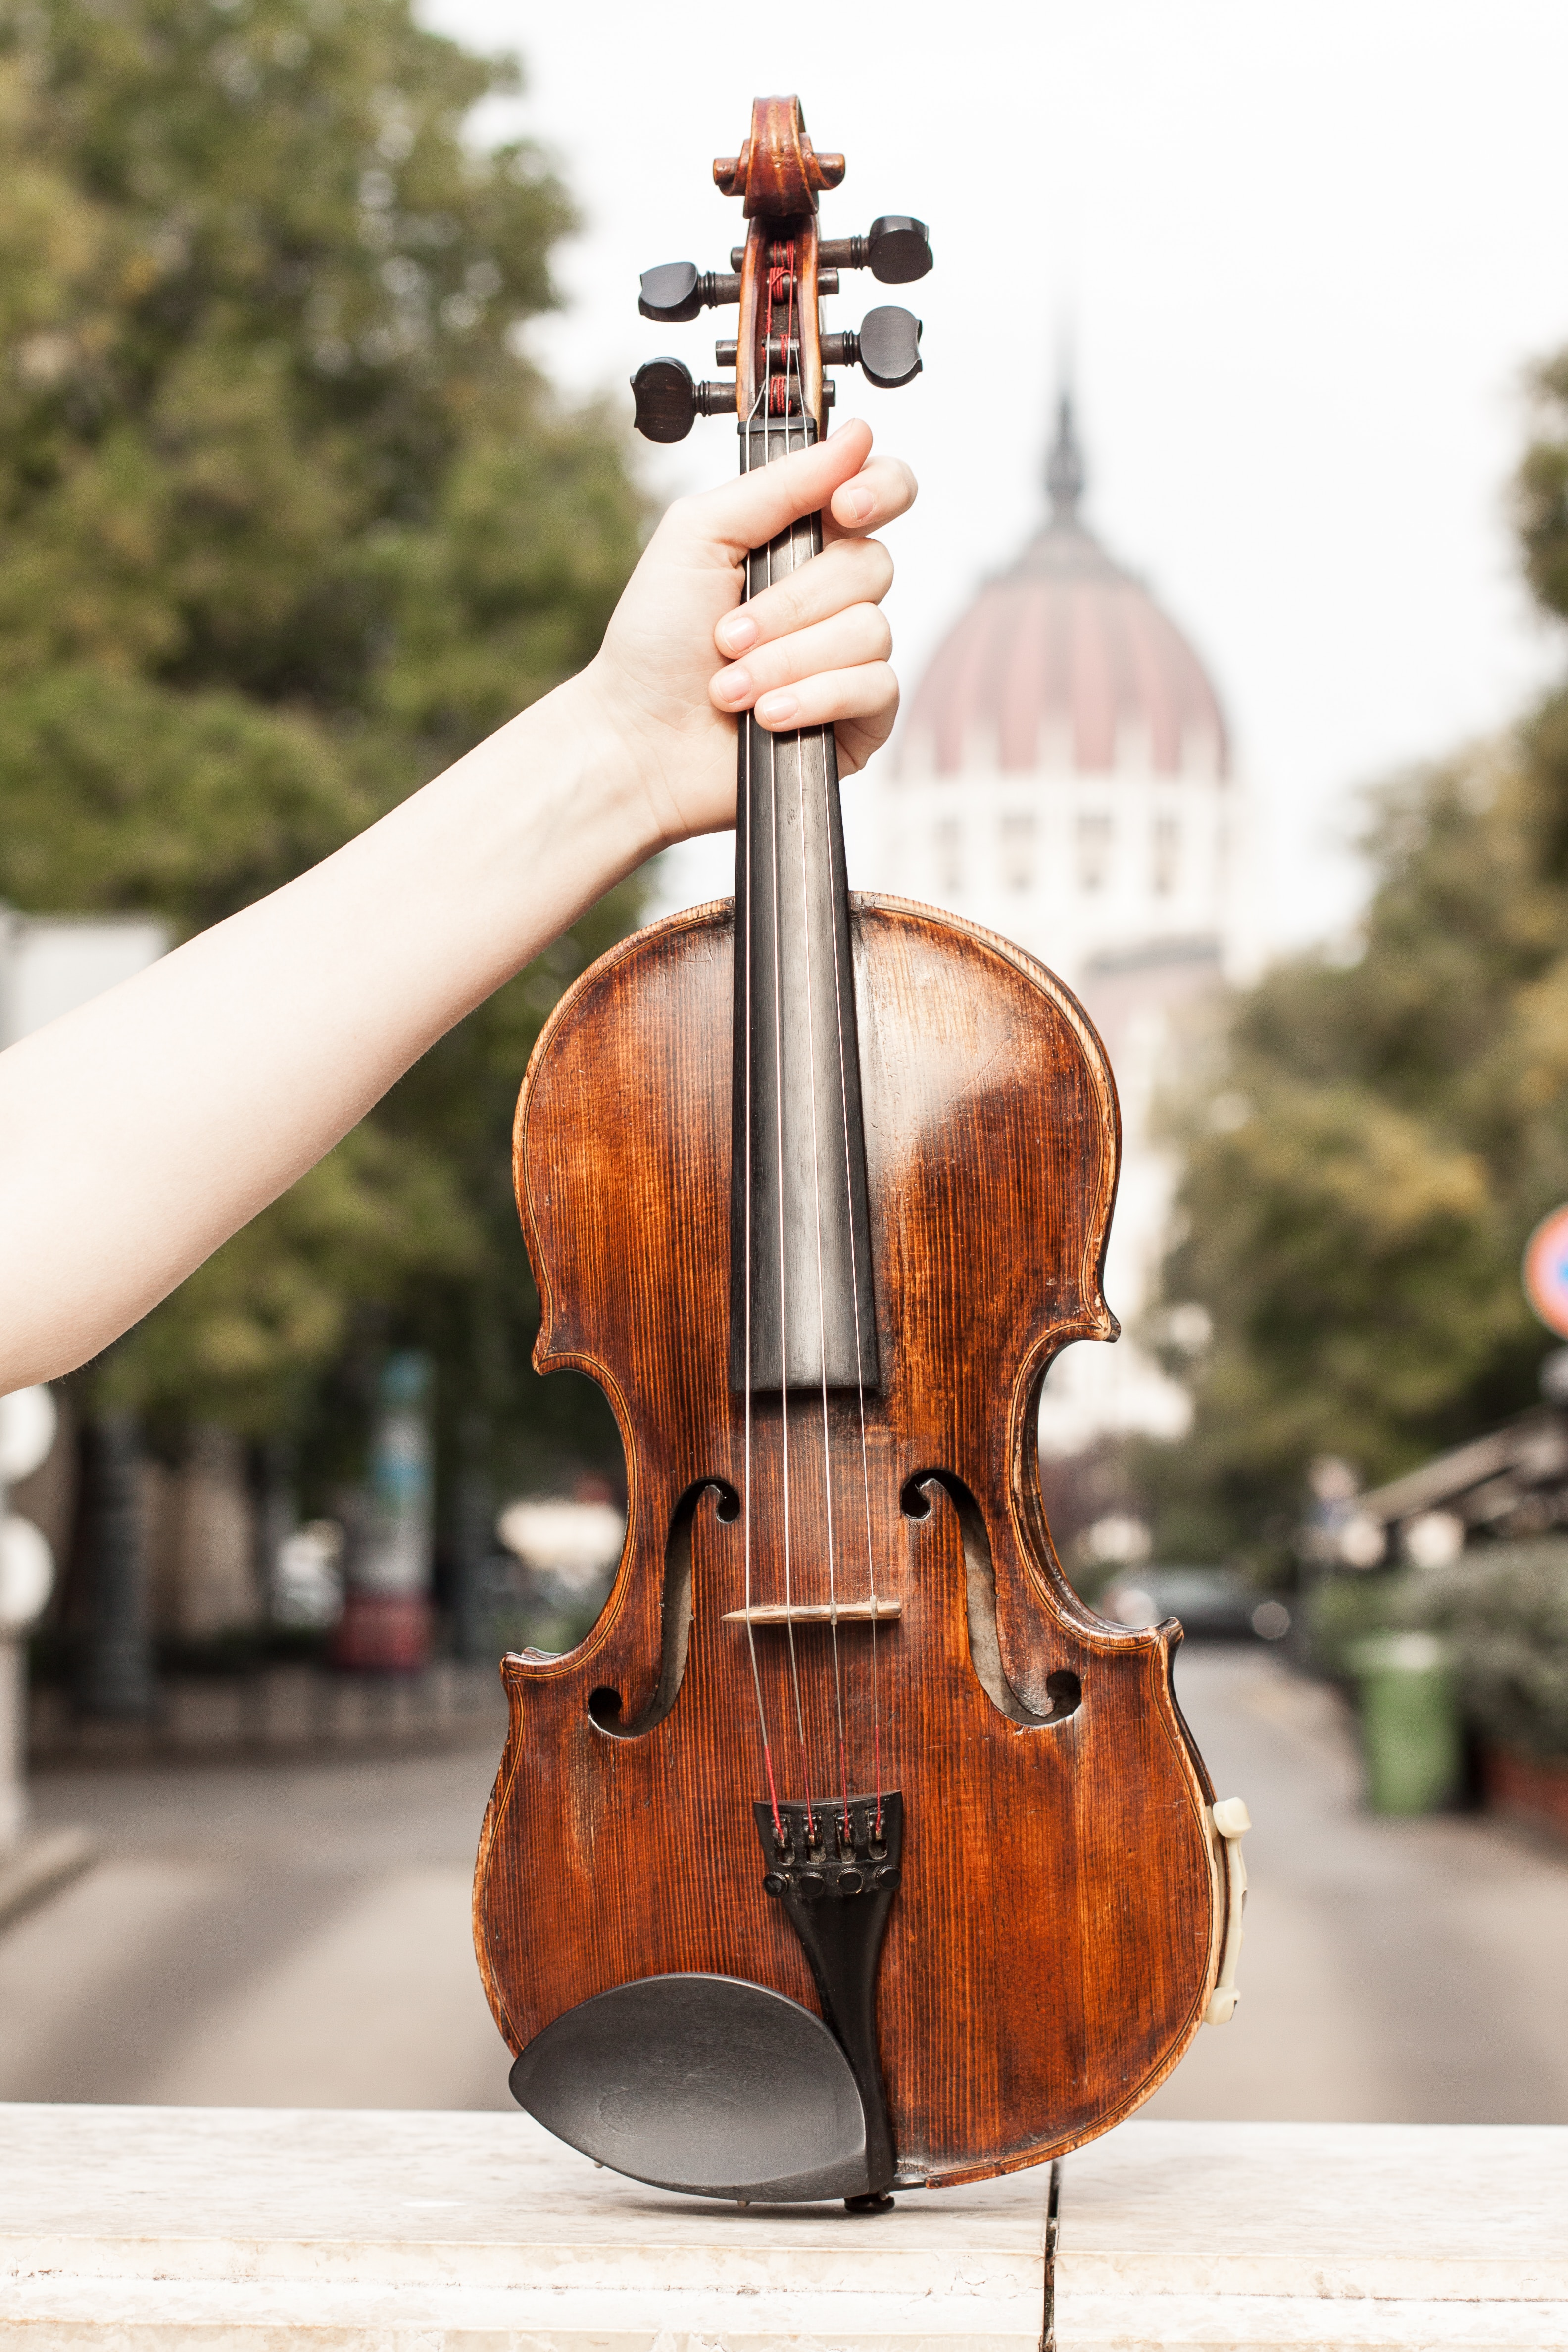 person playing violin during daytime